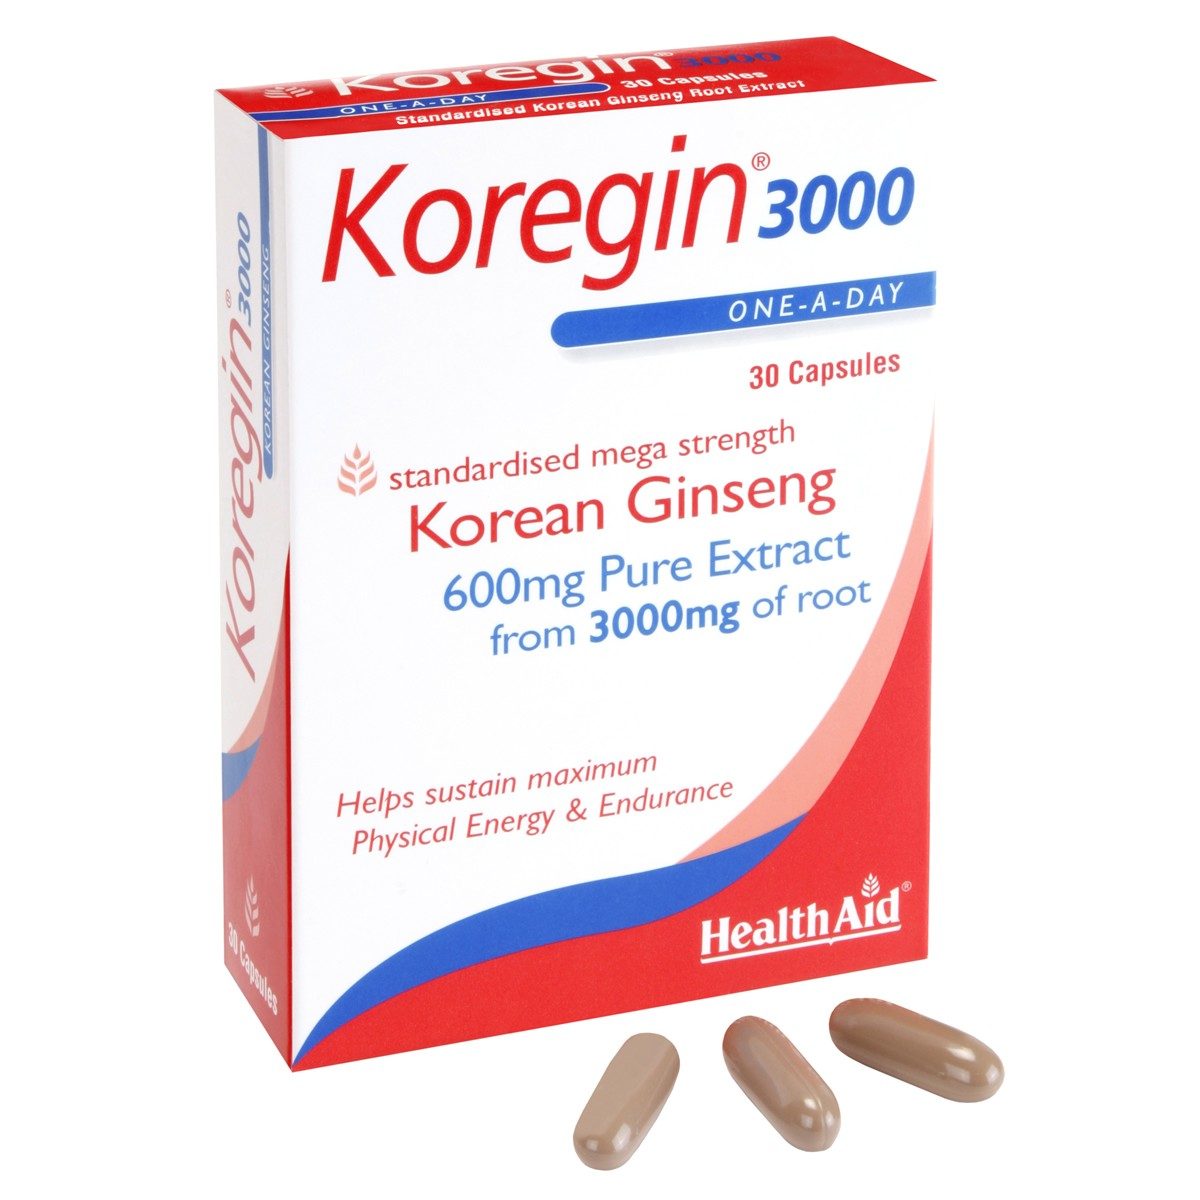 HealthAid Koregin 3000 (Korean Ginseng 3000mg) - Blister Pack